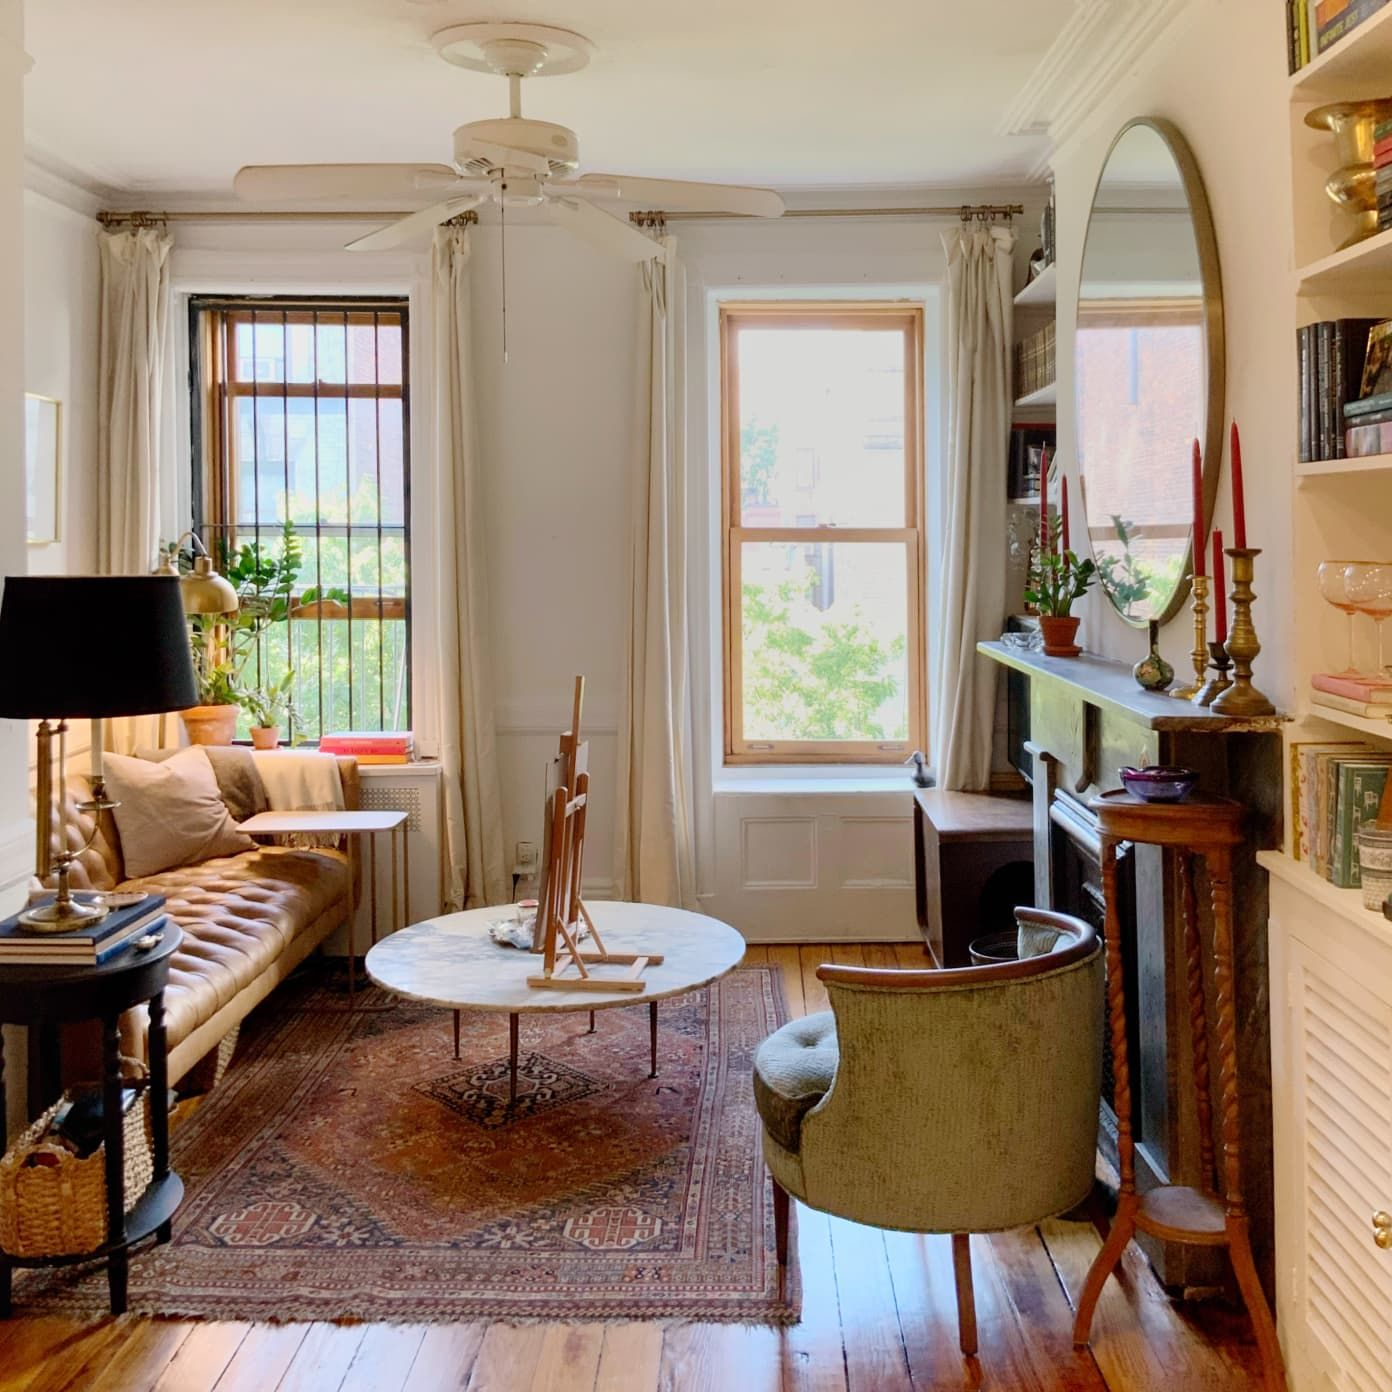 A 350 Square Foot Nyc Rental Apartment Wisely Uses Hooks Mirrors And More In Small Space Inspiration Spaces Living